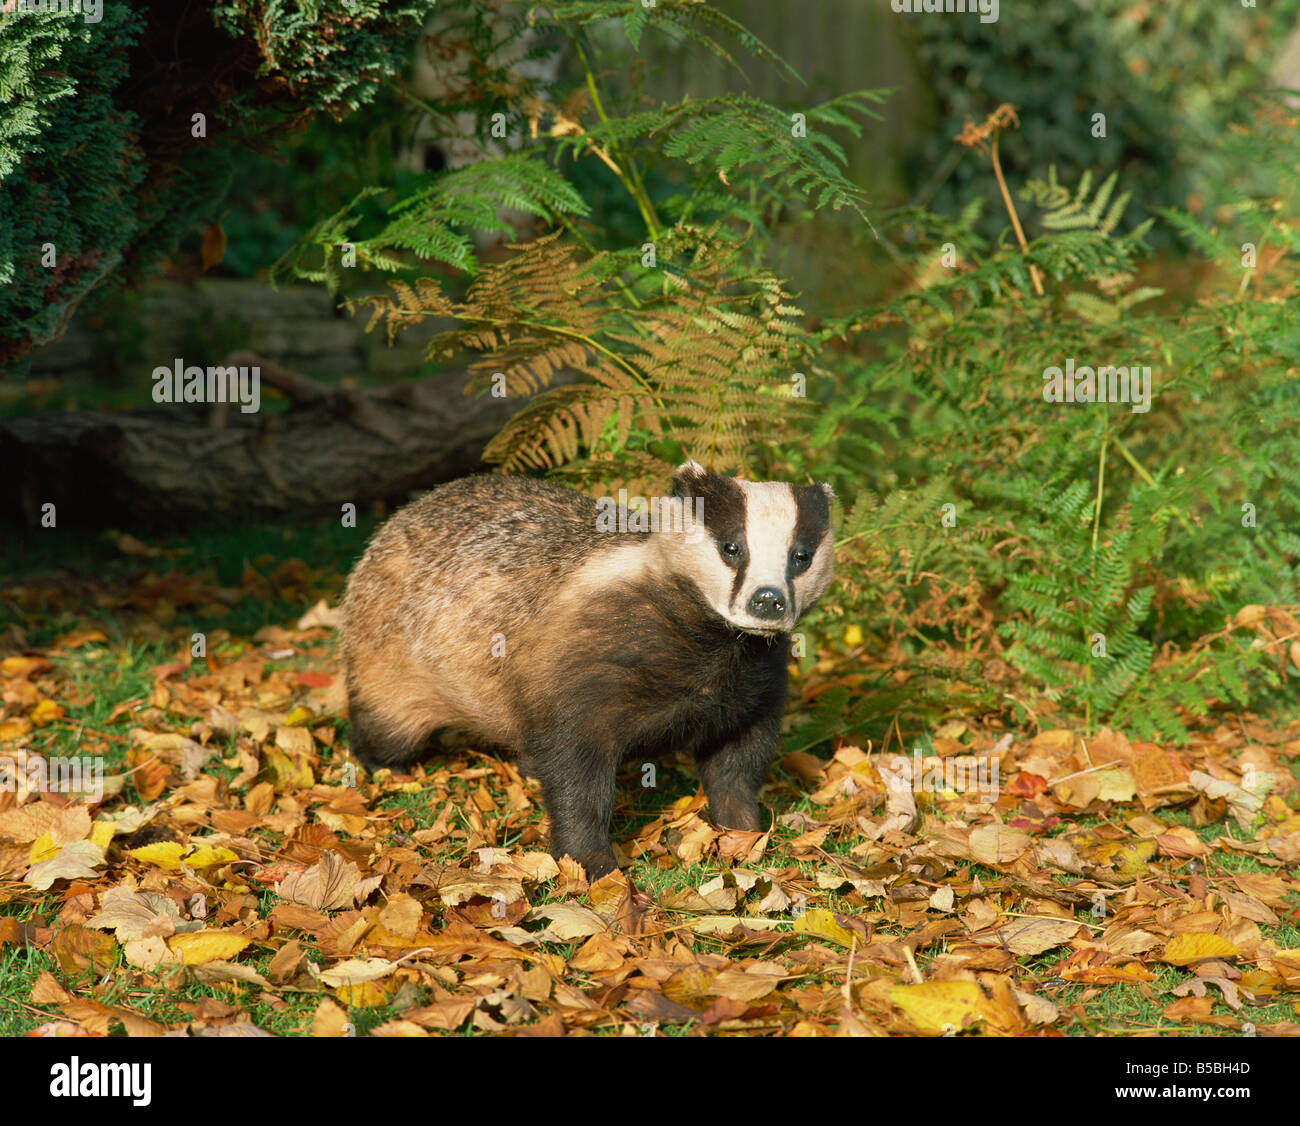 Badger Meles Meles United Kingdom Europe - Stock Image